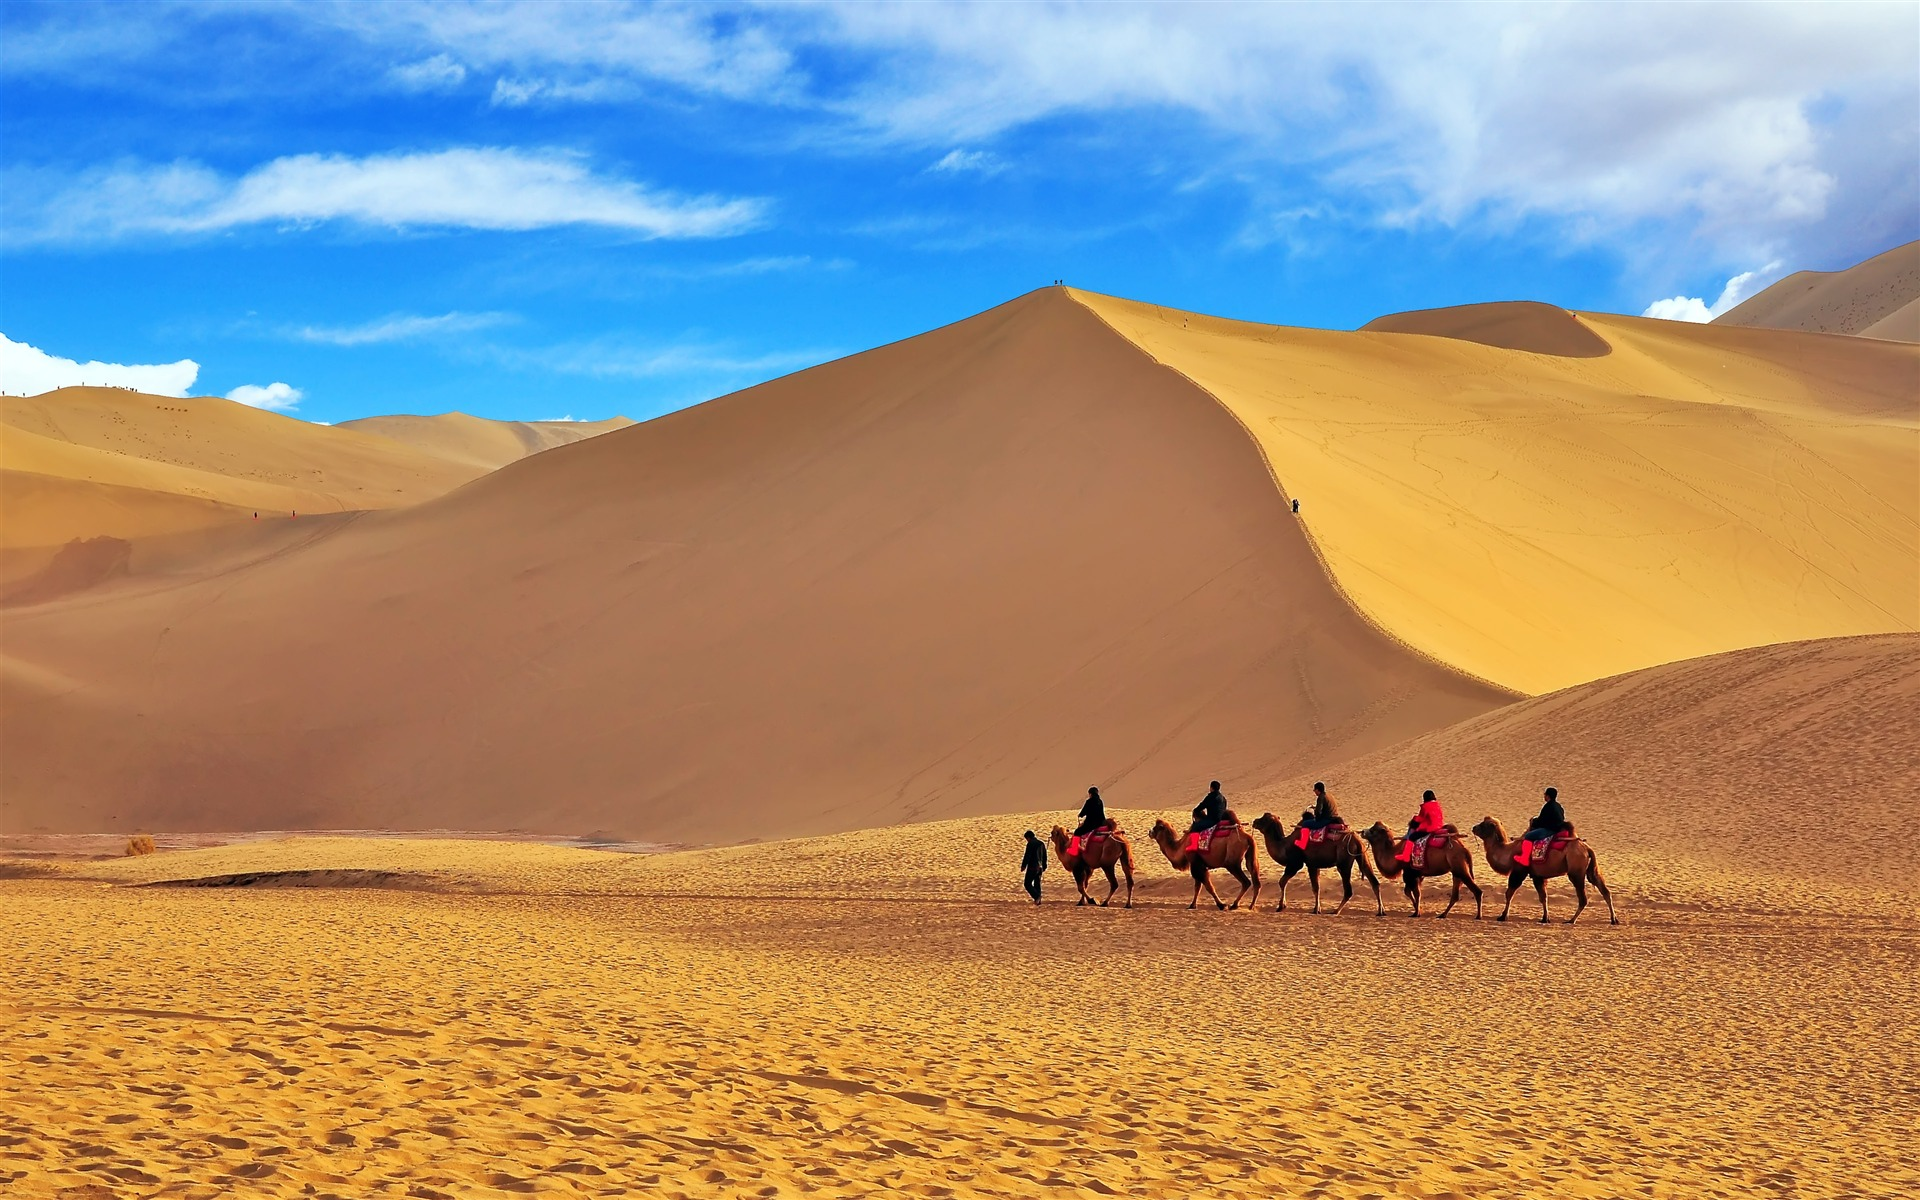 China Desert Camel Team wallpaper 1920x1200